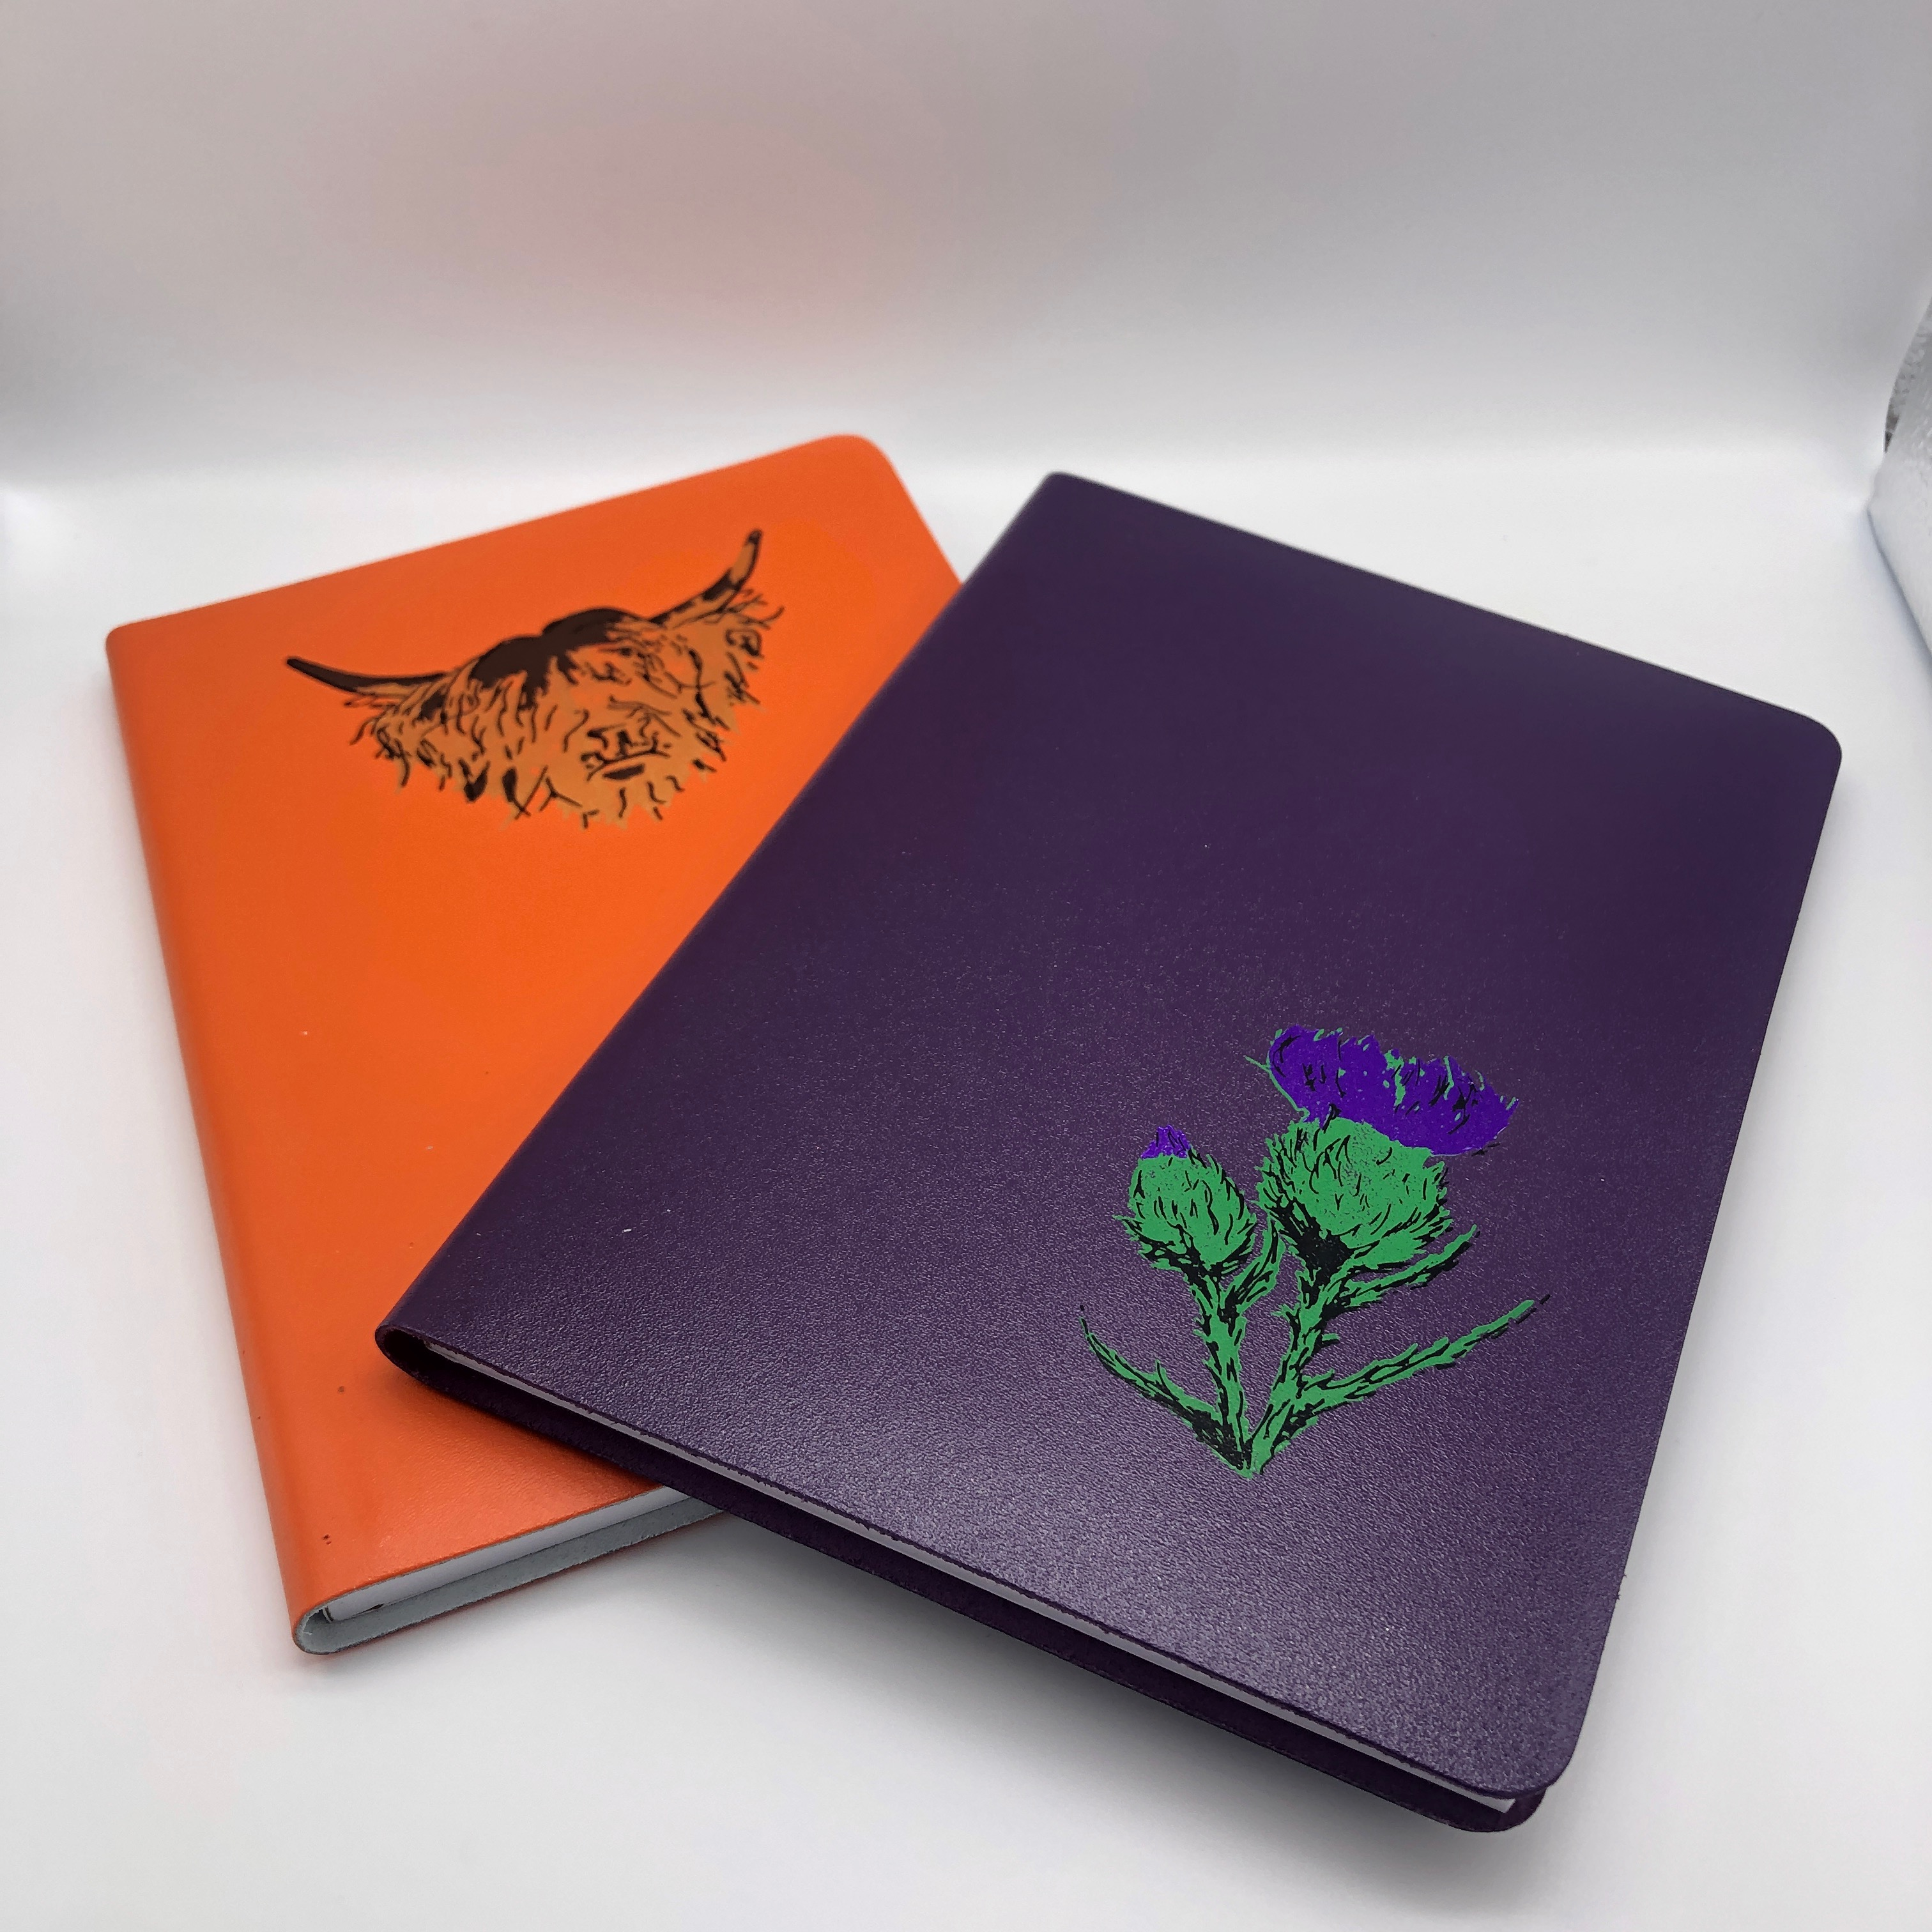 Clare Baird Leather Journals